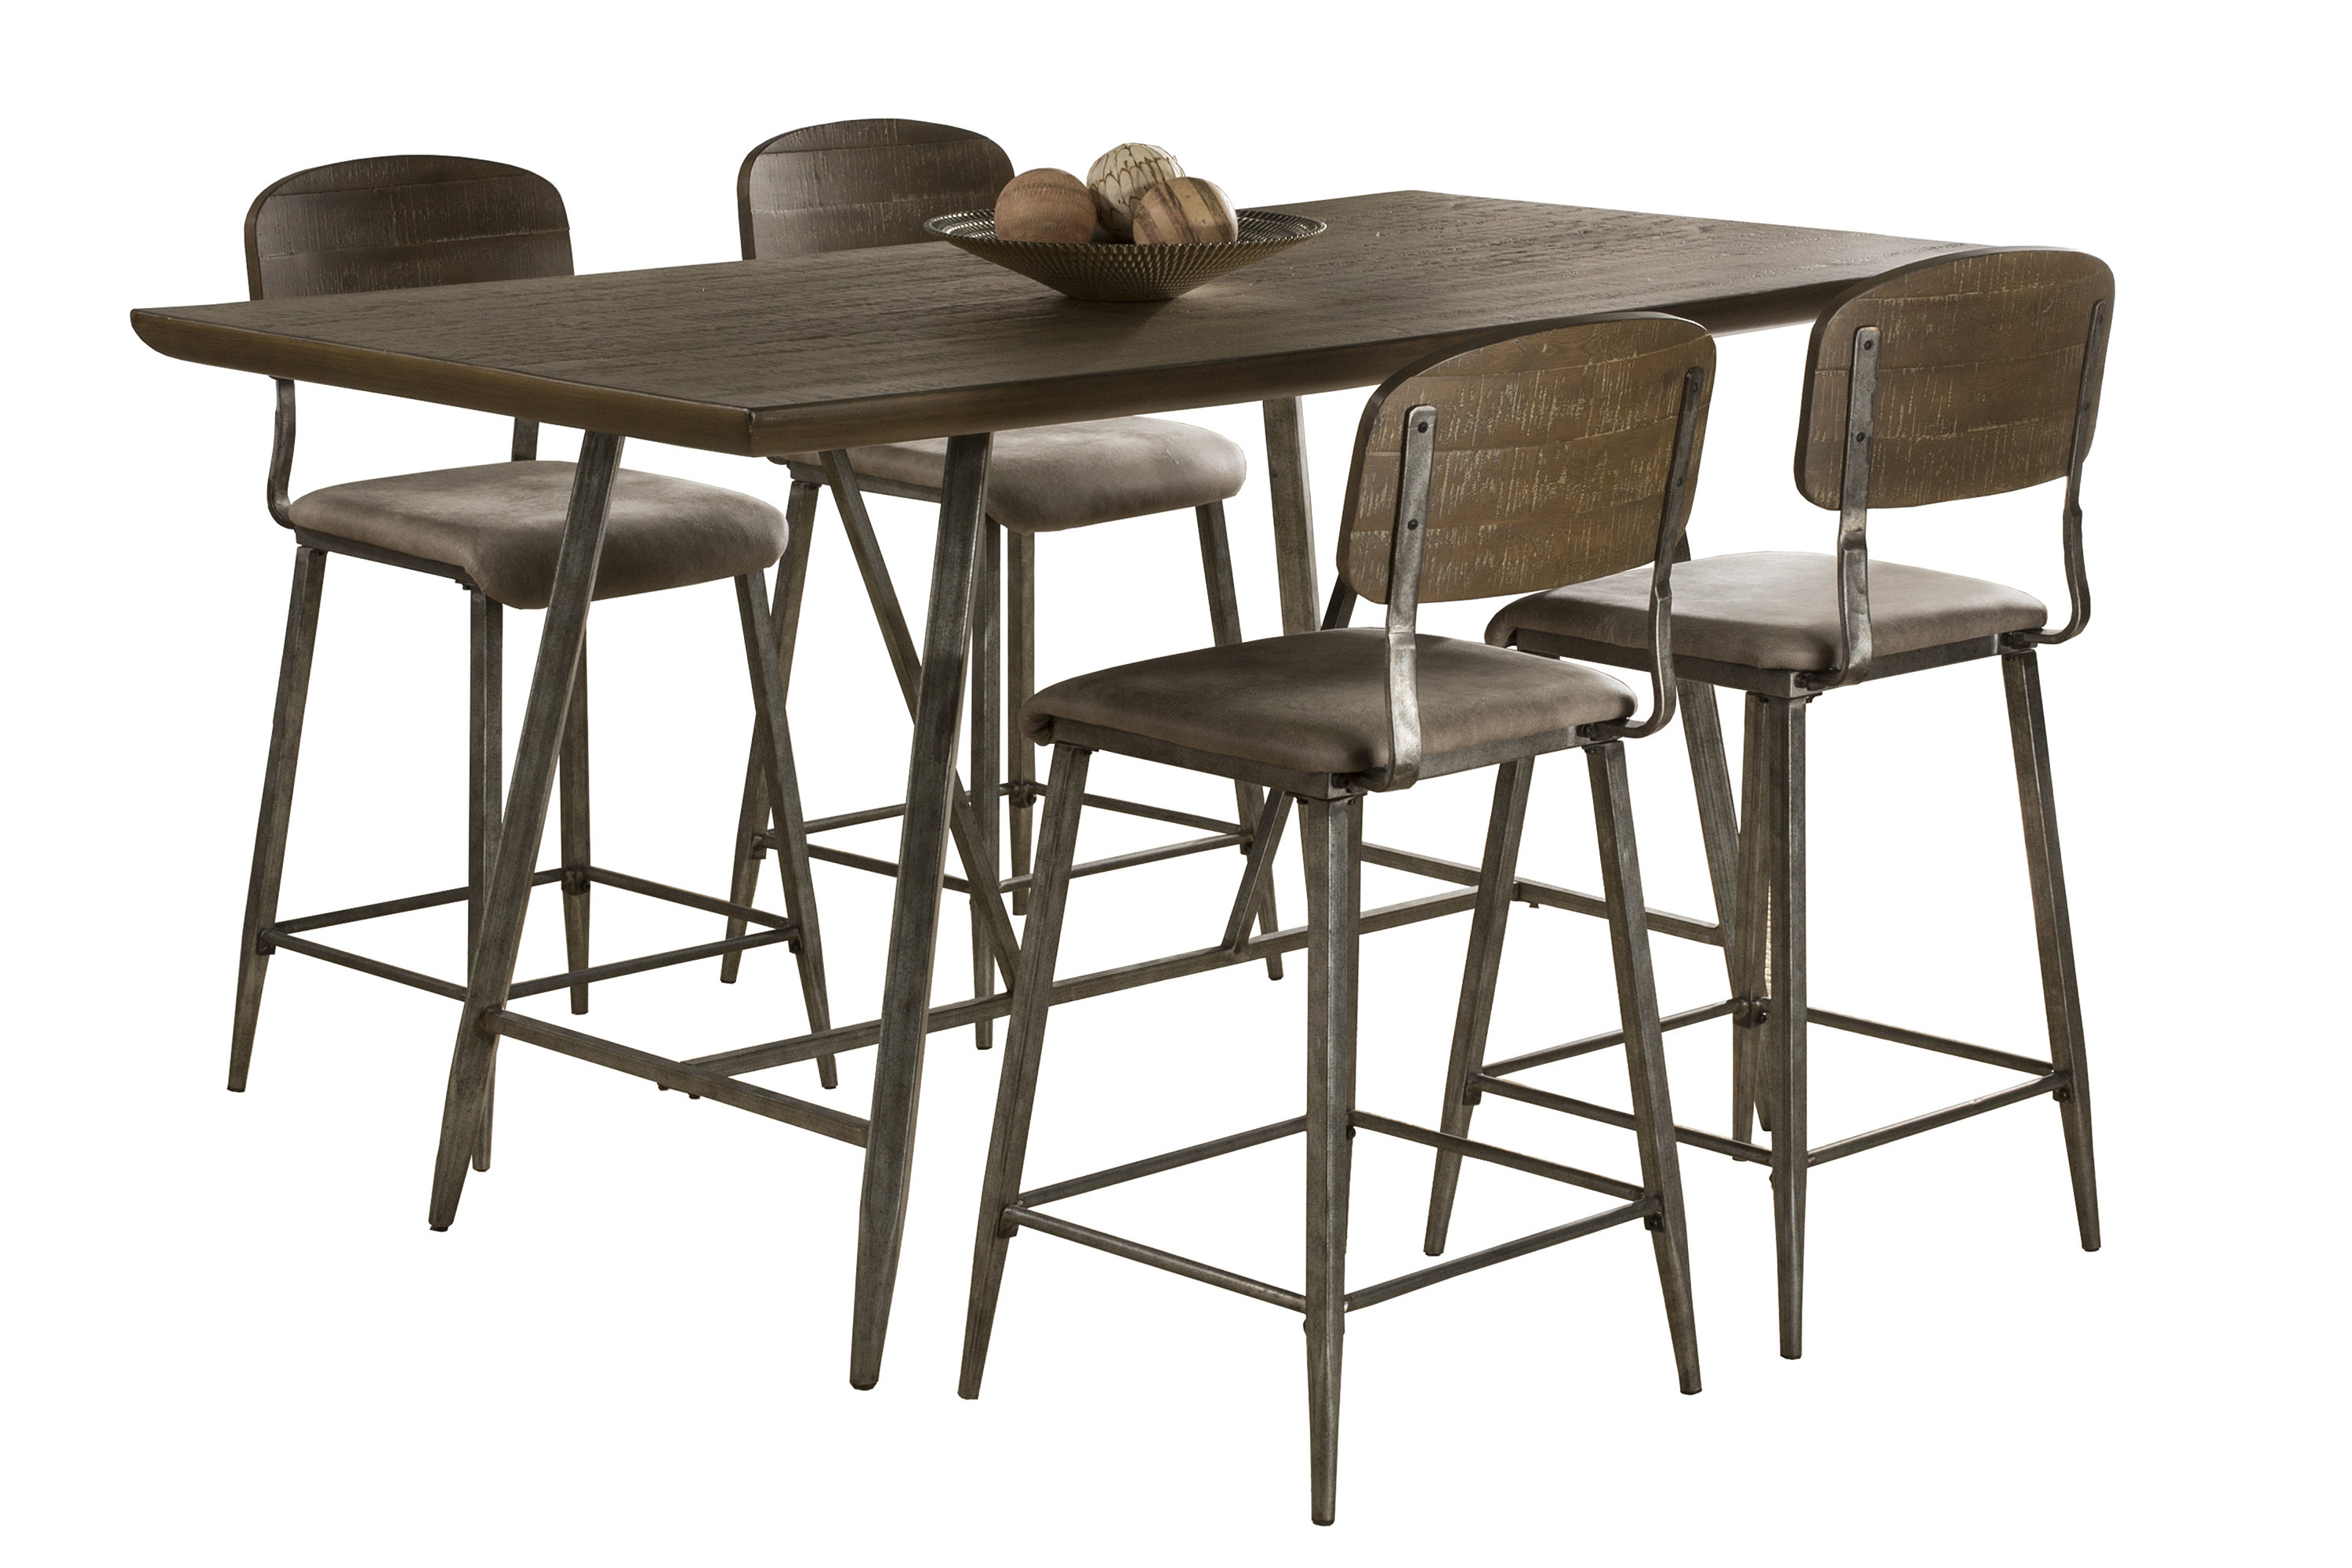 Georgia 5 Piece Counter Height Dining Set With Regard To Current Telauges 5 Piece Dining Sets (View 13 of 20)